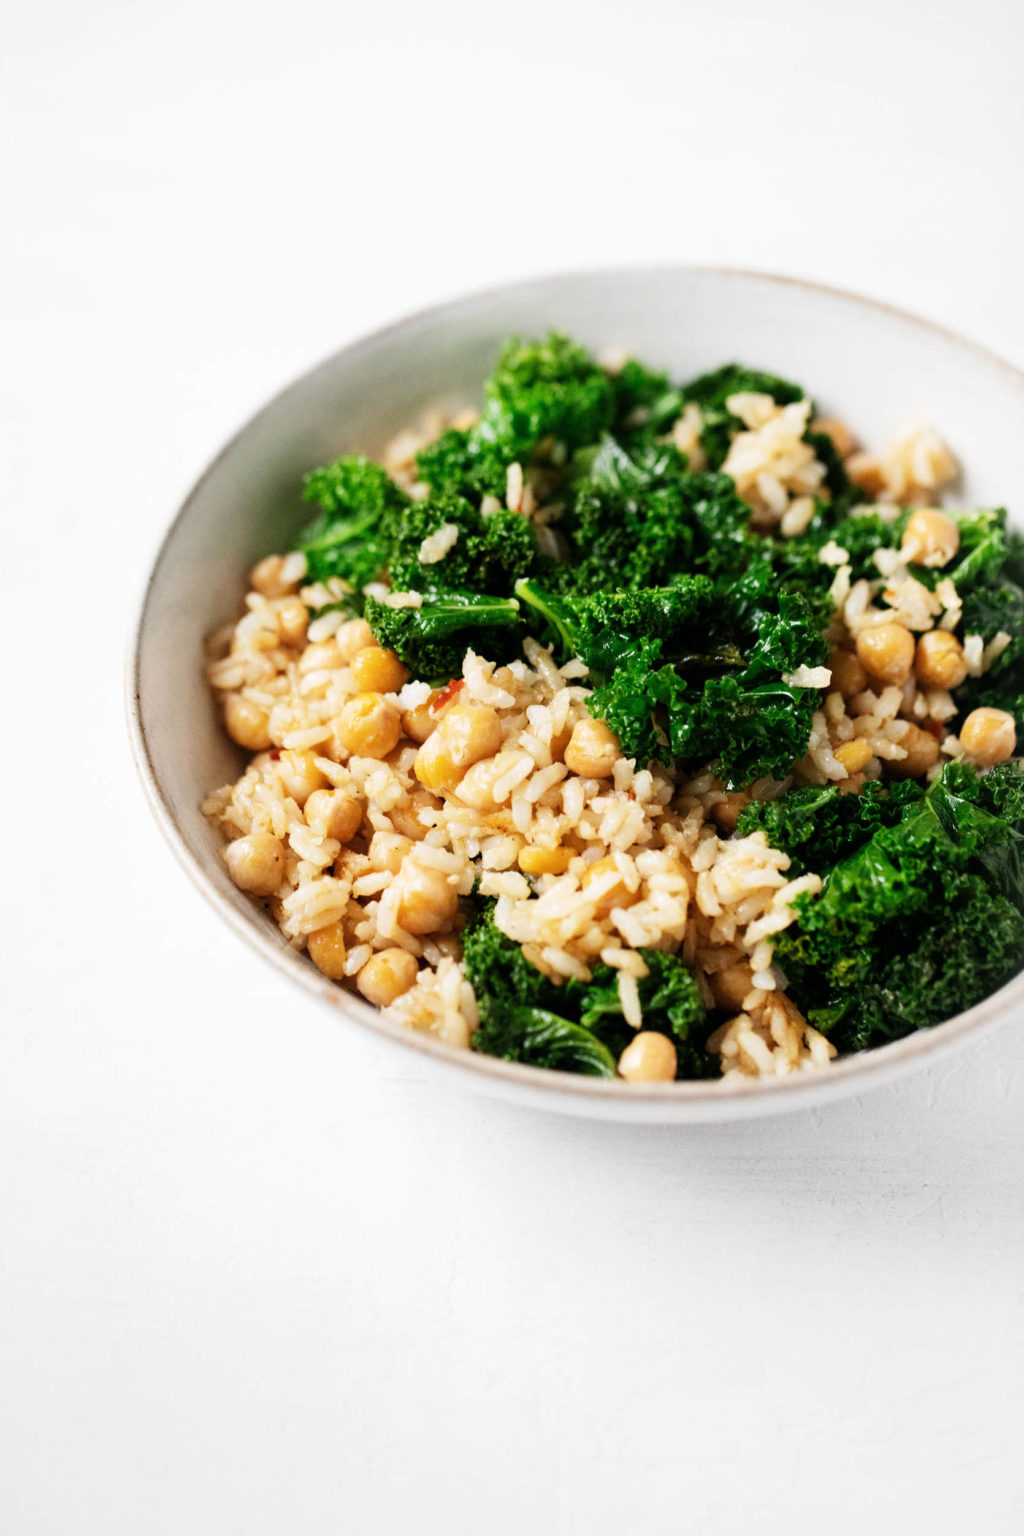 A grain, green and bean dish is nestled into a serving bowl.